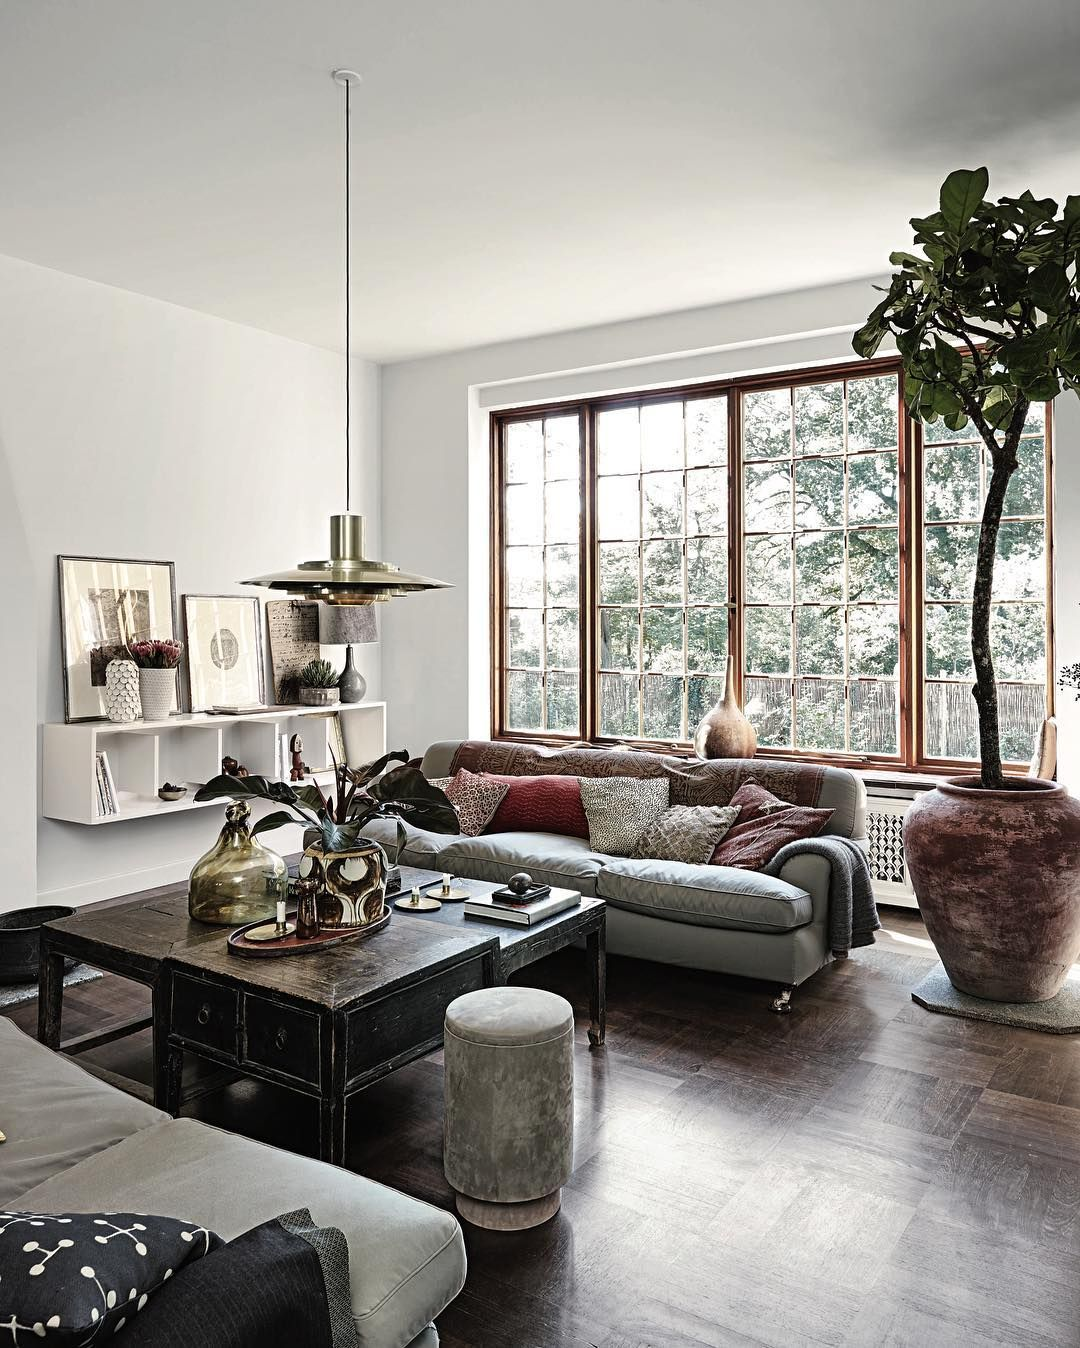 9 570 mentions j aime 48 commentaires vogueliving sur instagram interiors from the new issue of vogue living some people choose a home based on